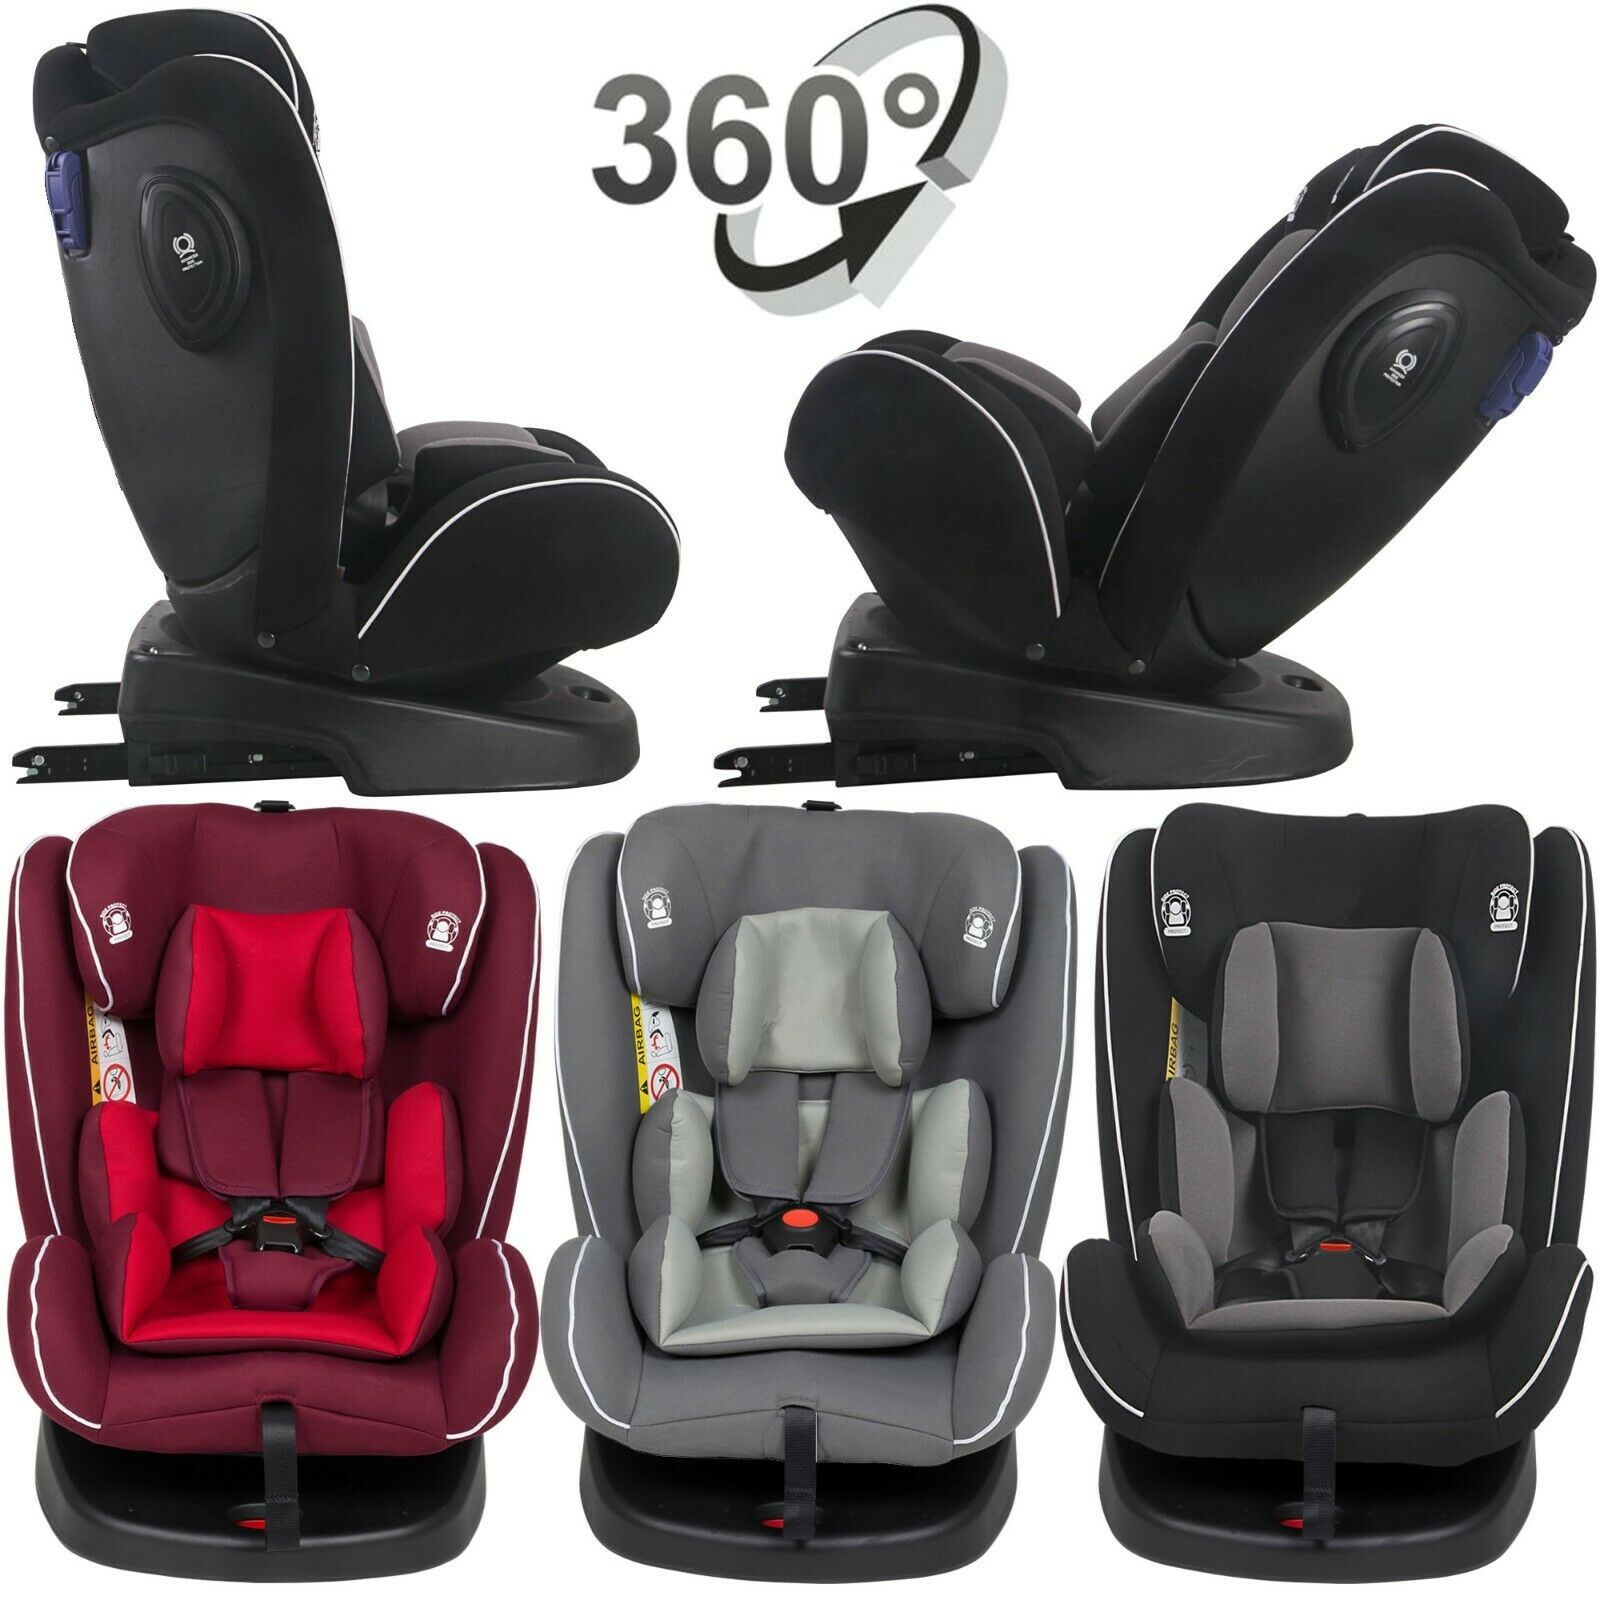 isofix kindersitz 0 36 kg reboarder 360 drehbar autositz 0 1 2 3 baby sitz avon ebay. Black Bedroom Furniture Sets. Home Design Ideas